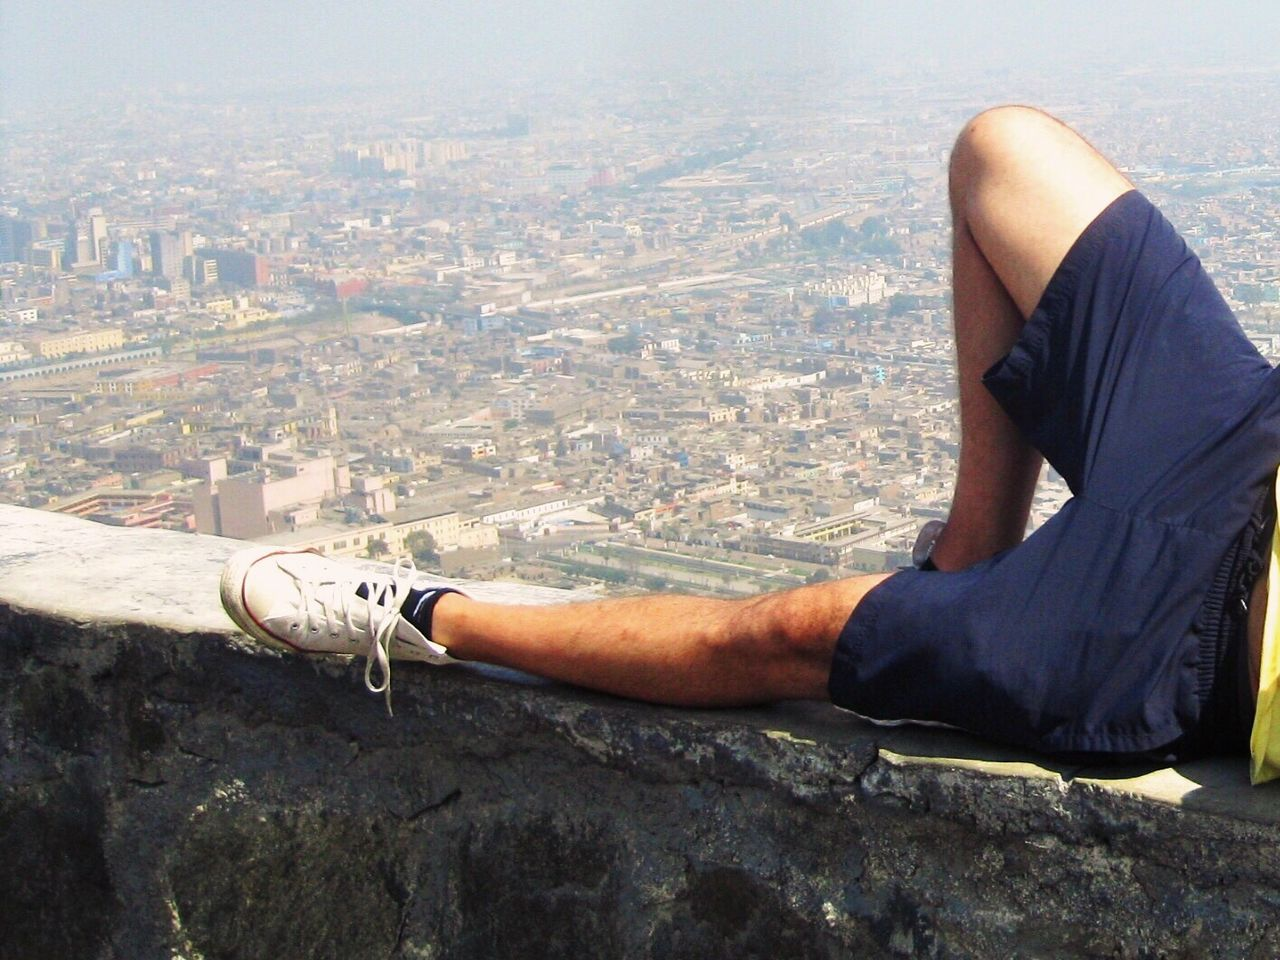 Out Of The Box Above The City Cityscape Relaxing Rest City One Person Architecture Real People Built Structure Outdoors One Man Only People Photography Urbanphotography Chucks Leisure Activity People And Places Place Of Heart